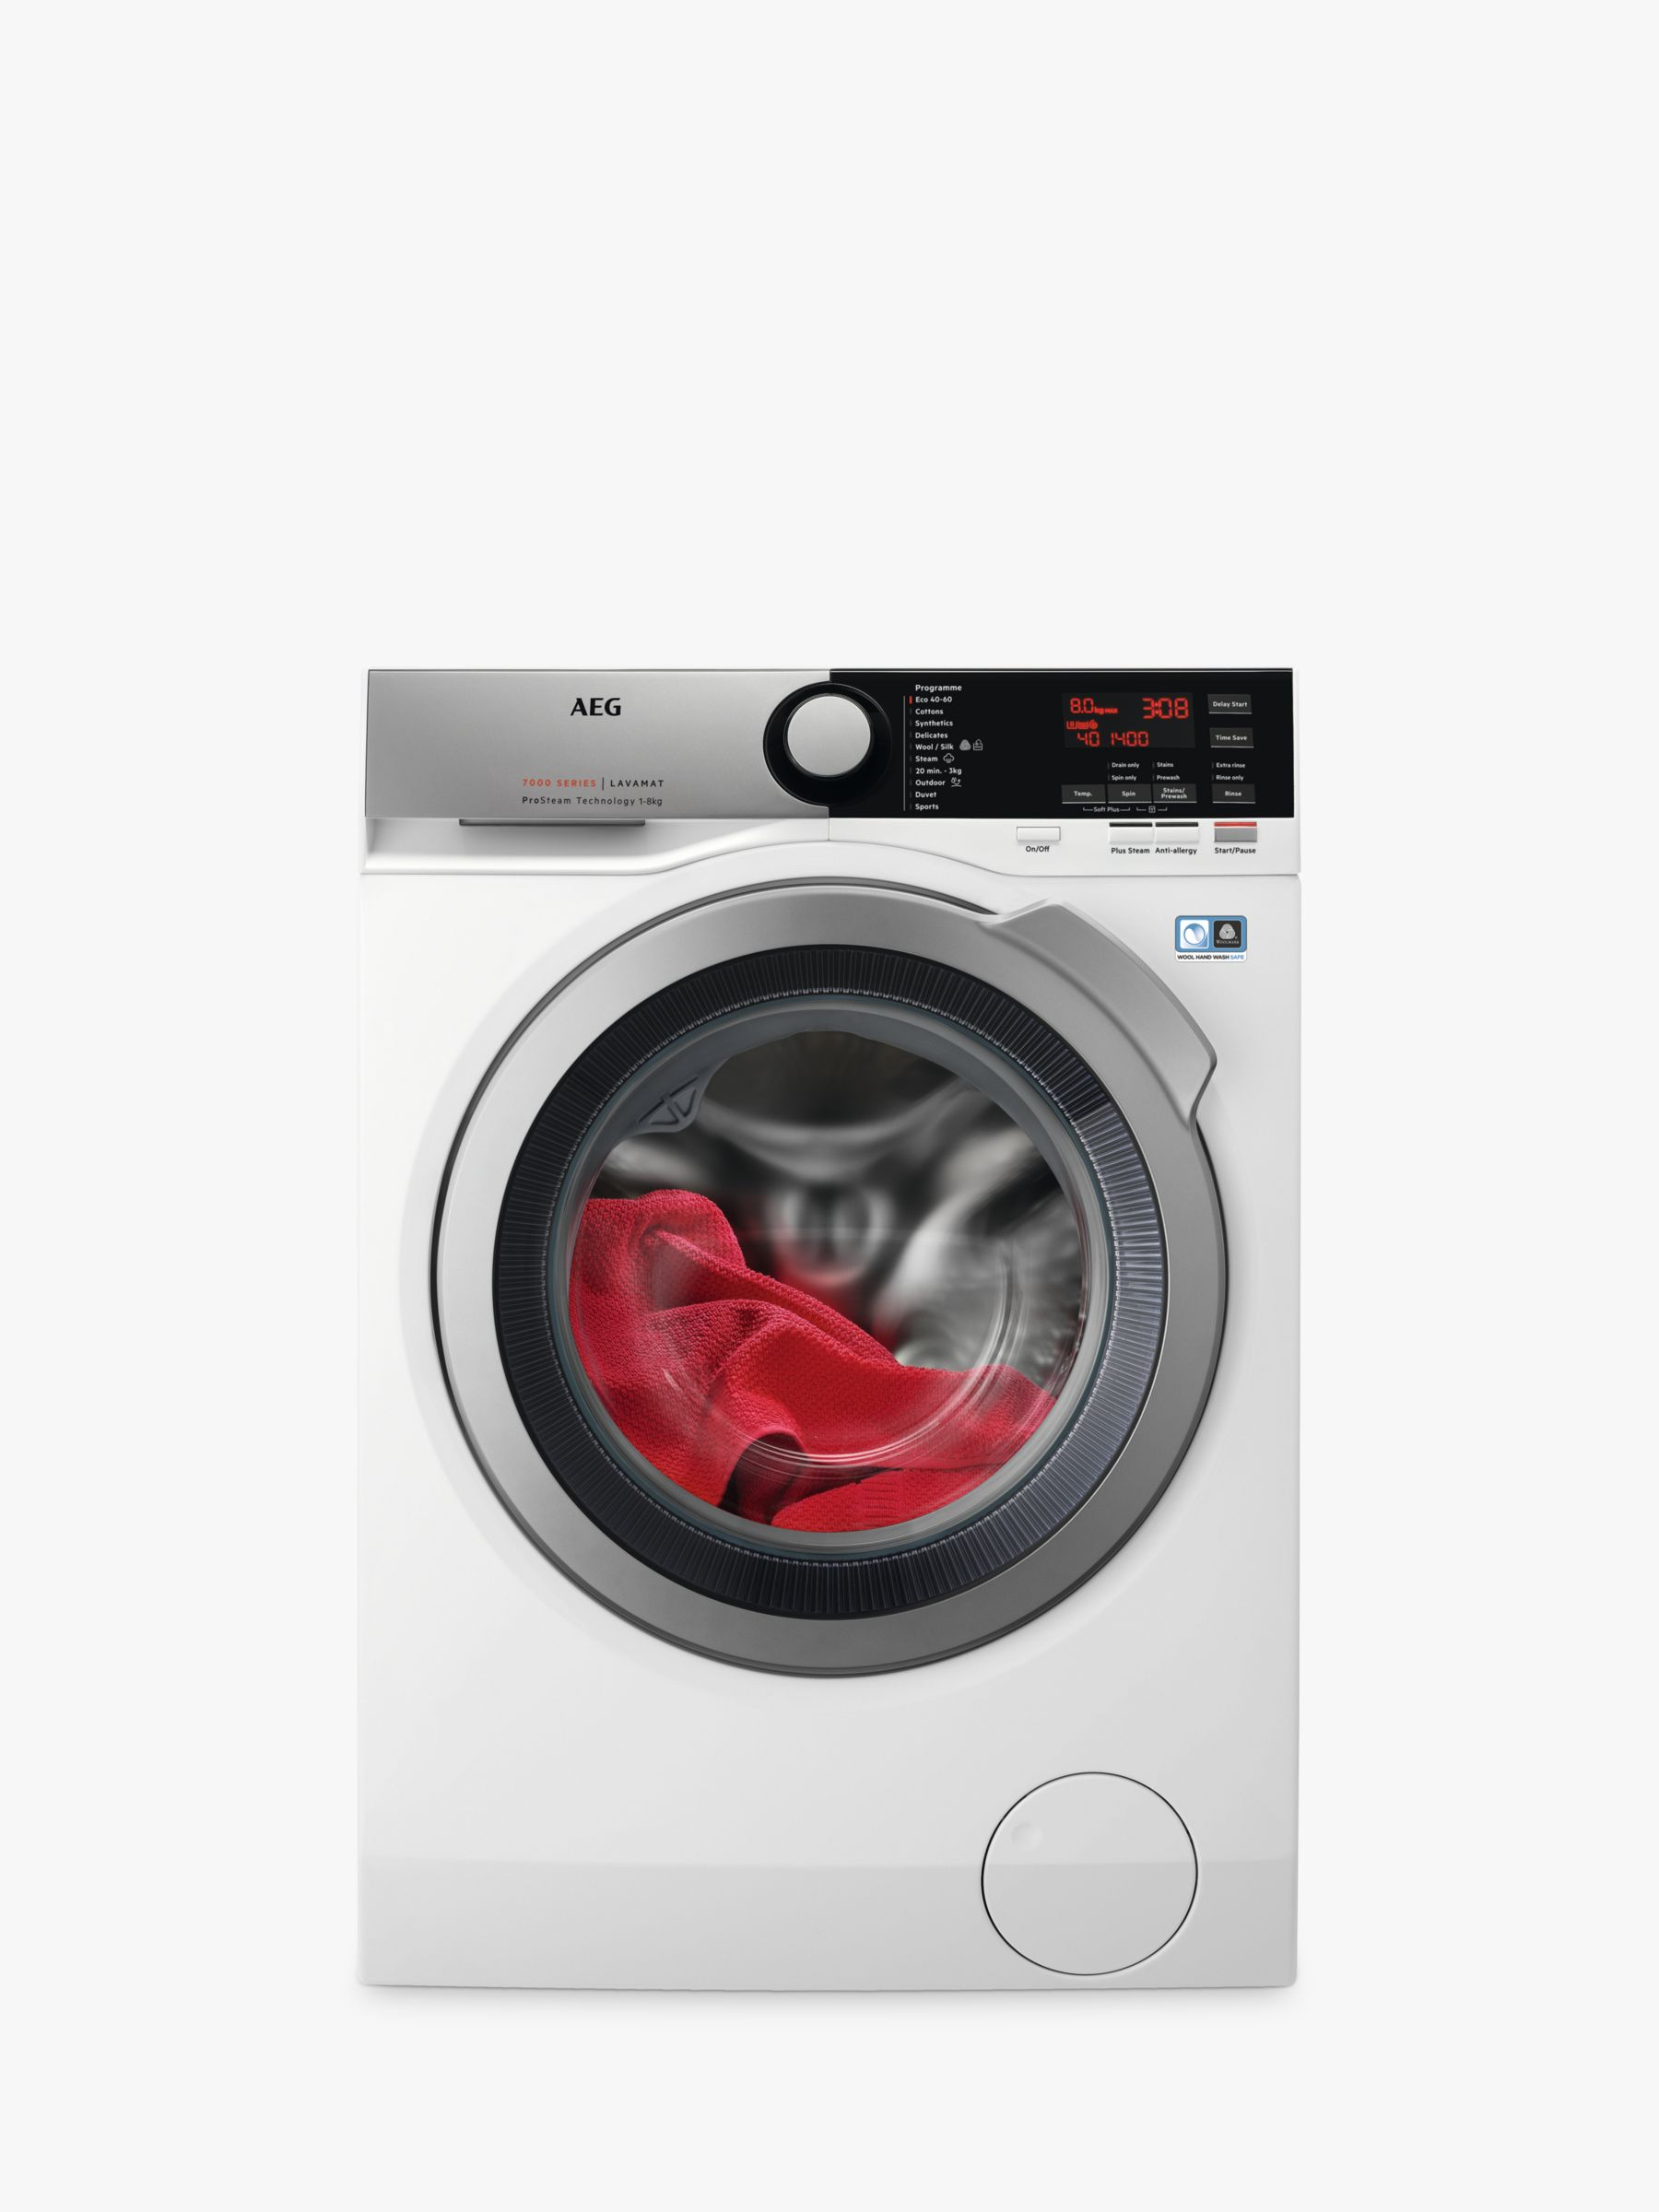 AEG AEG ProSteam Technology L7FEE865R Freestanding Washing Machine, 8kg Load, A+++ Energy Rating, 1600rpm Spin, White